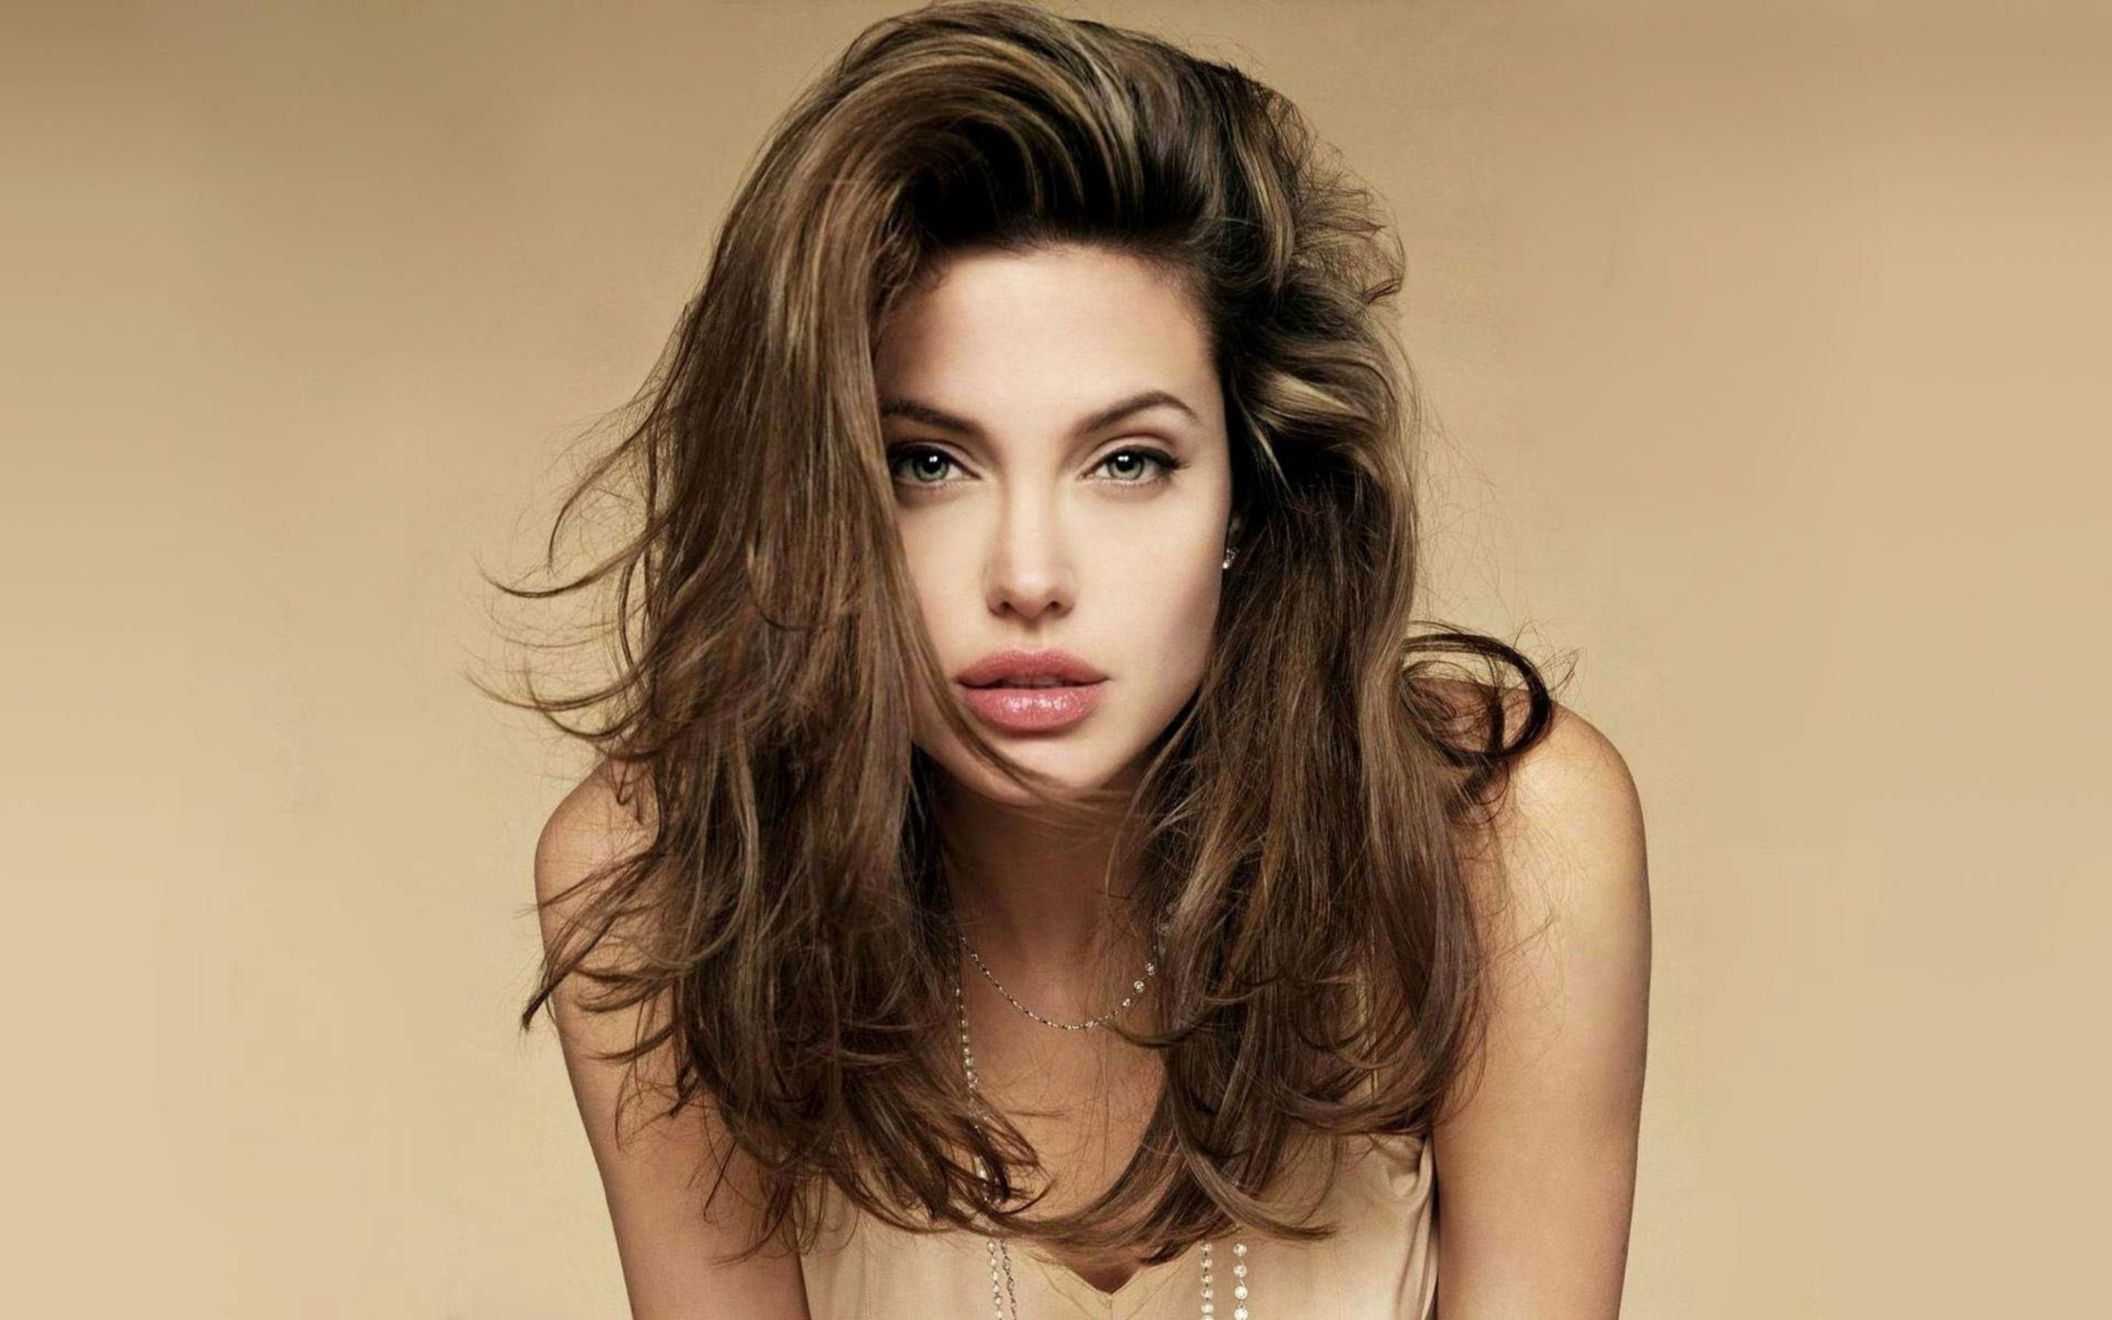 sweet angelina jolie hd wallpaper desktop hd wallpaper download